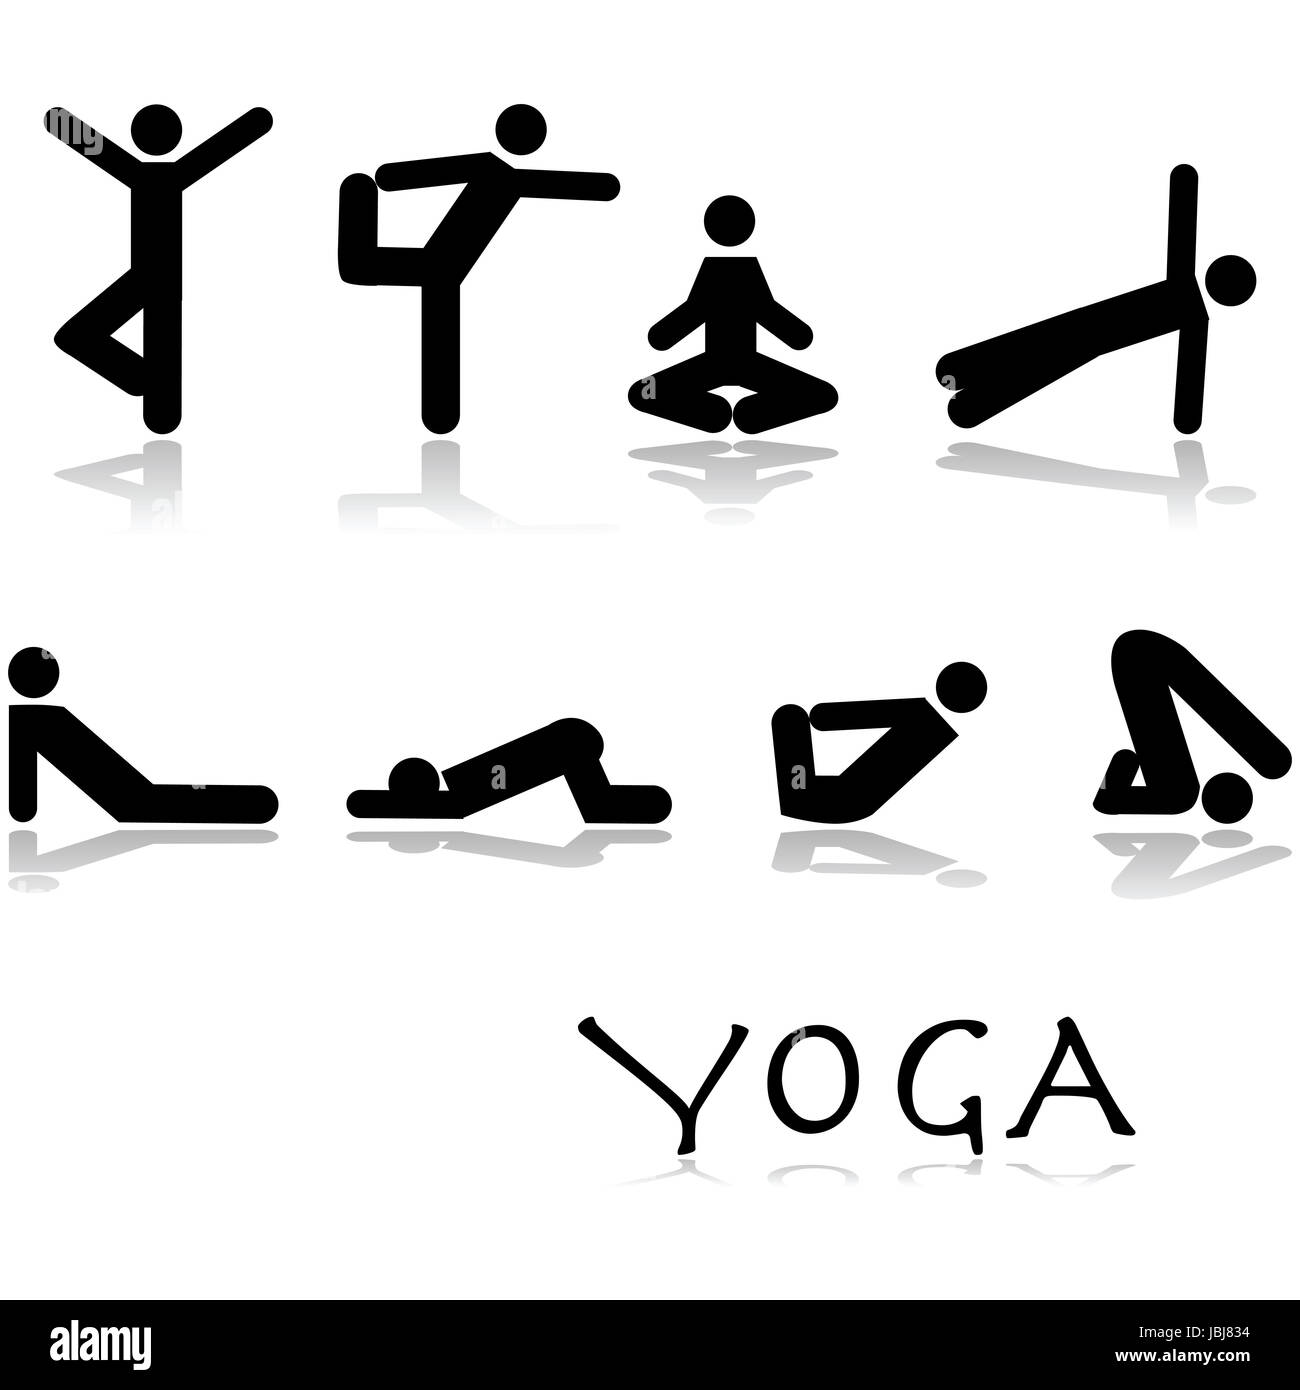 Icon set showing different yoga poses performed by stick figures stock image